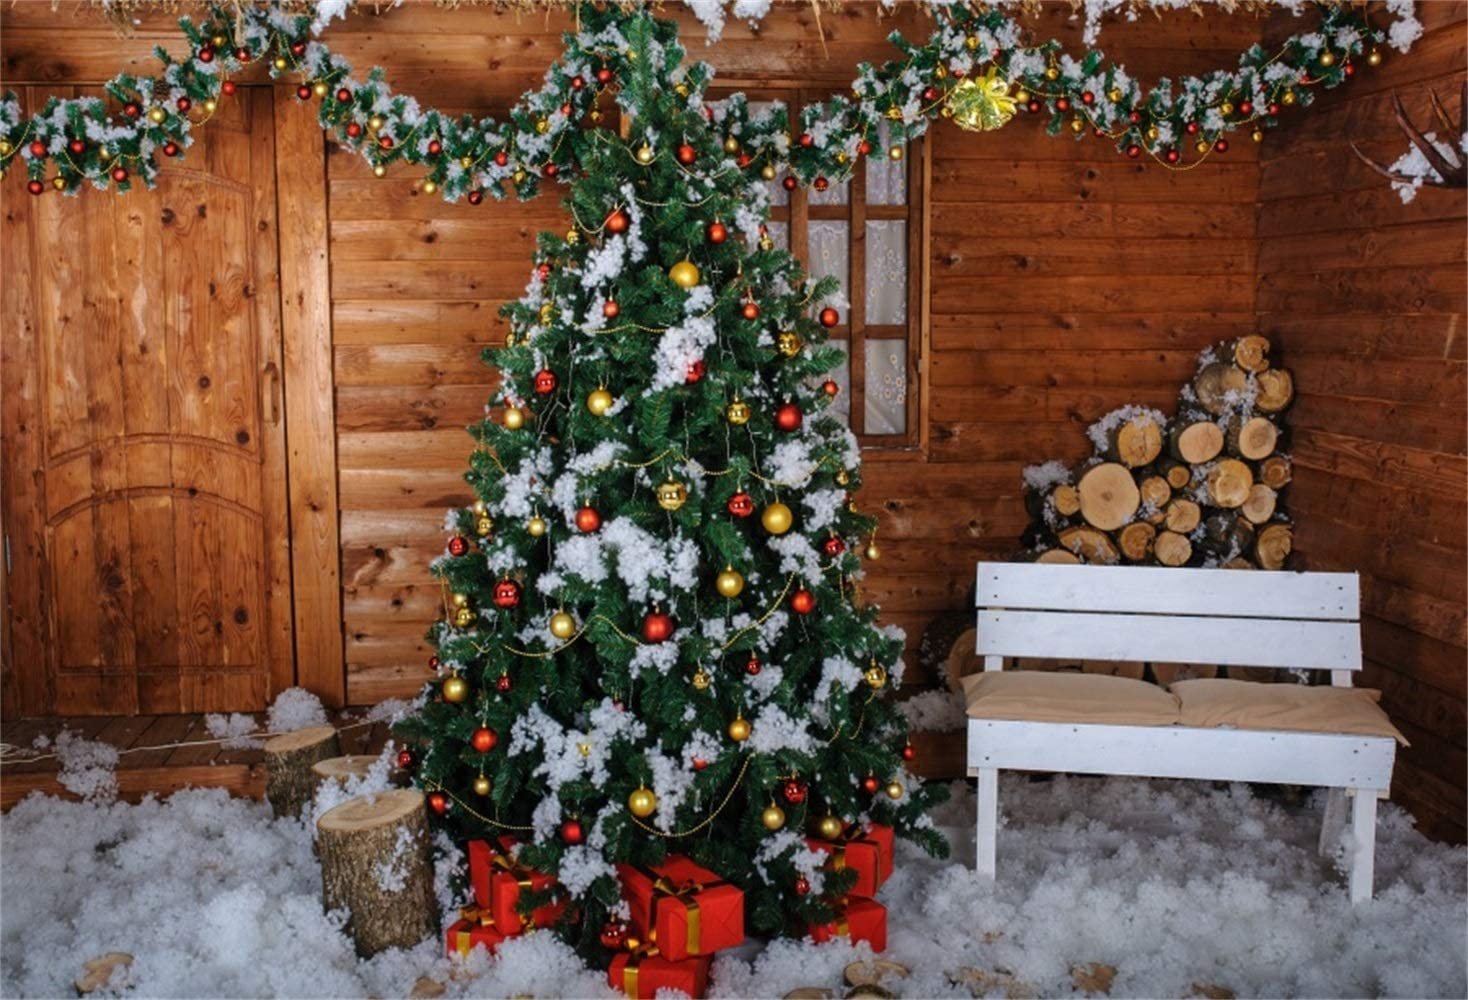 Christmassy Wooden House Frontage Bench Xmas Trees Gifts White Ski Boots Carpet Backdrop Polyester 8x6.5ft Christmas Theme Background Child Kids Adult Family Shoot Festival Celebration